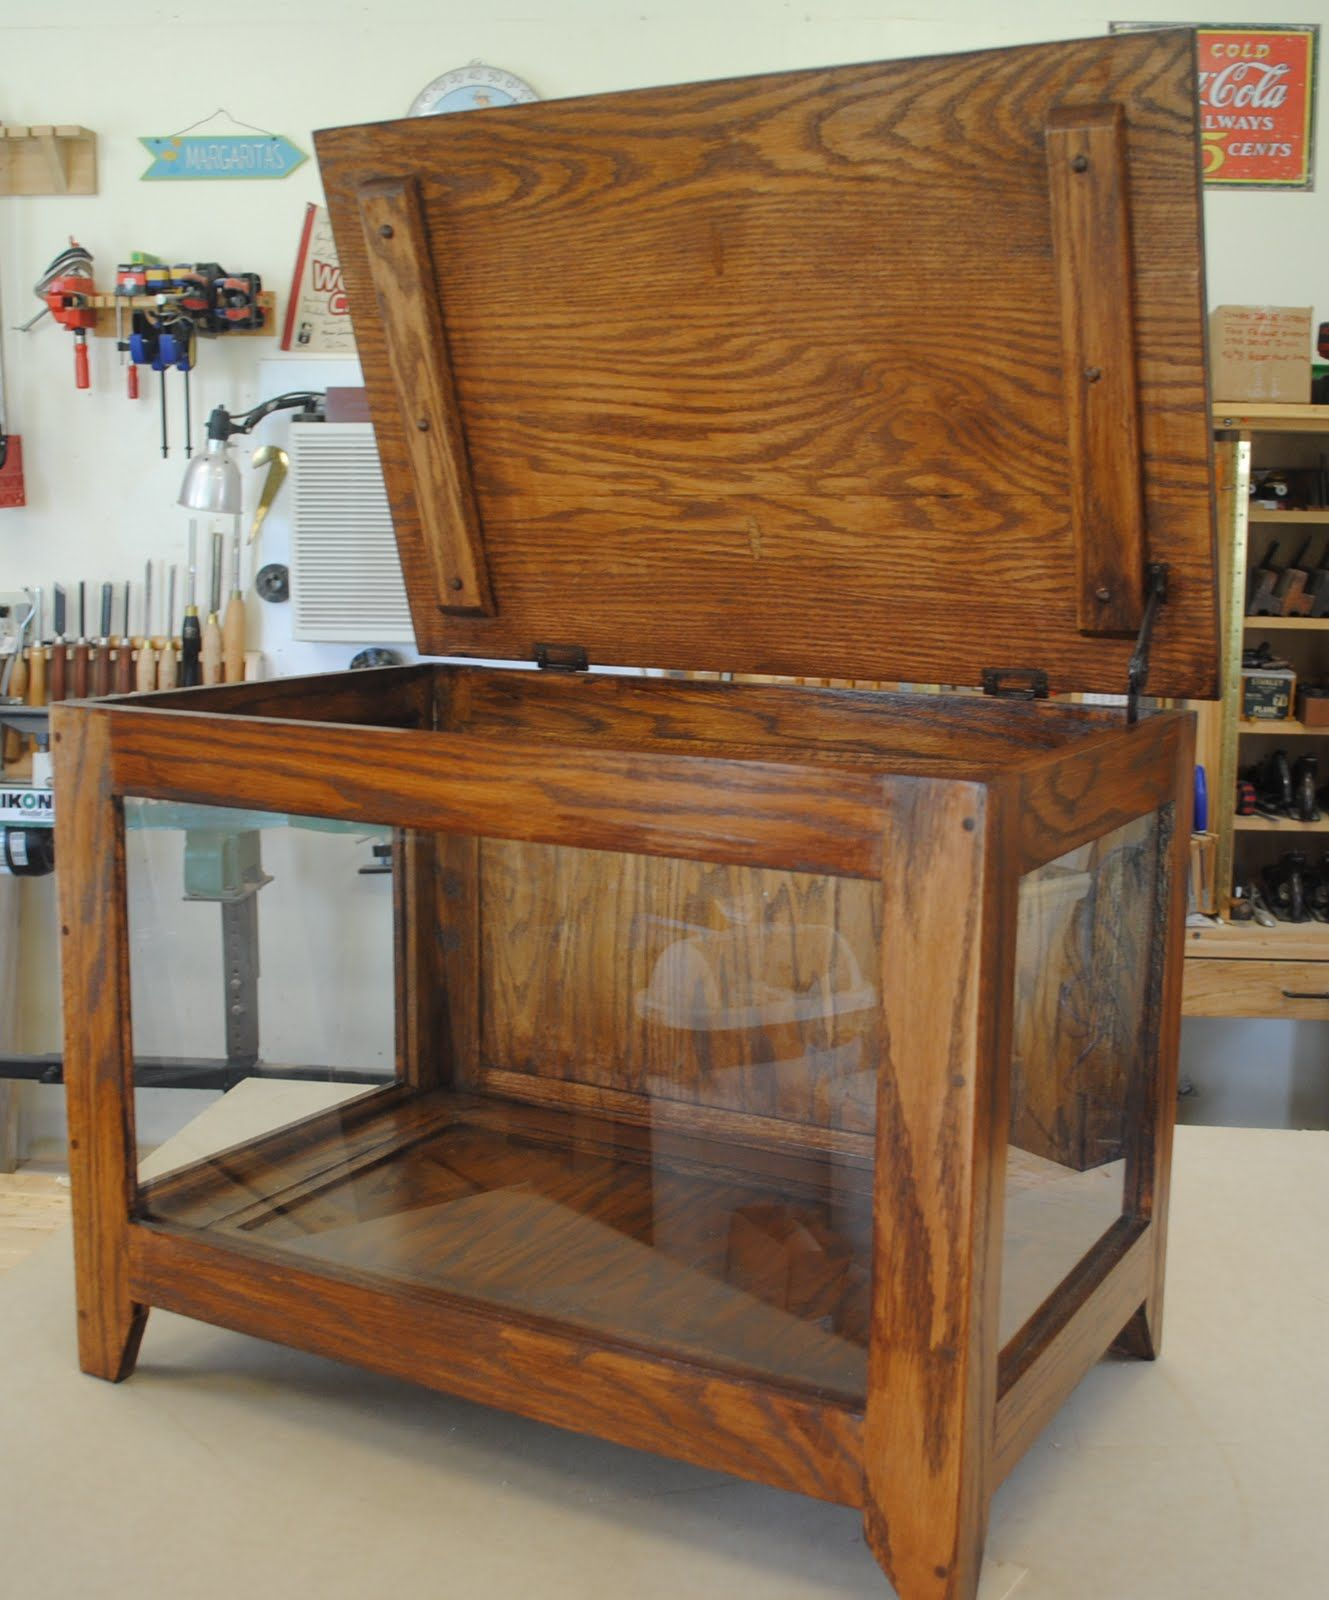 First Light Woodworking: Quilt Display Case | Ways to Display ... : quilt display cases - Adamdwight.com